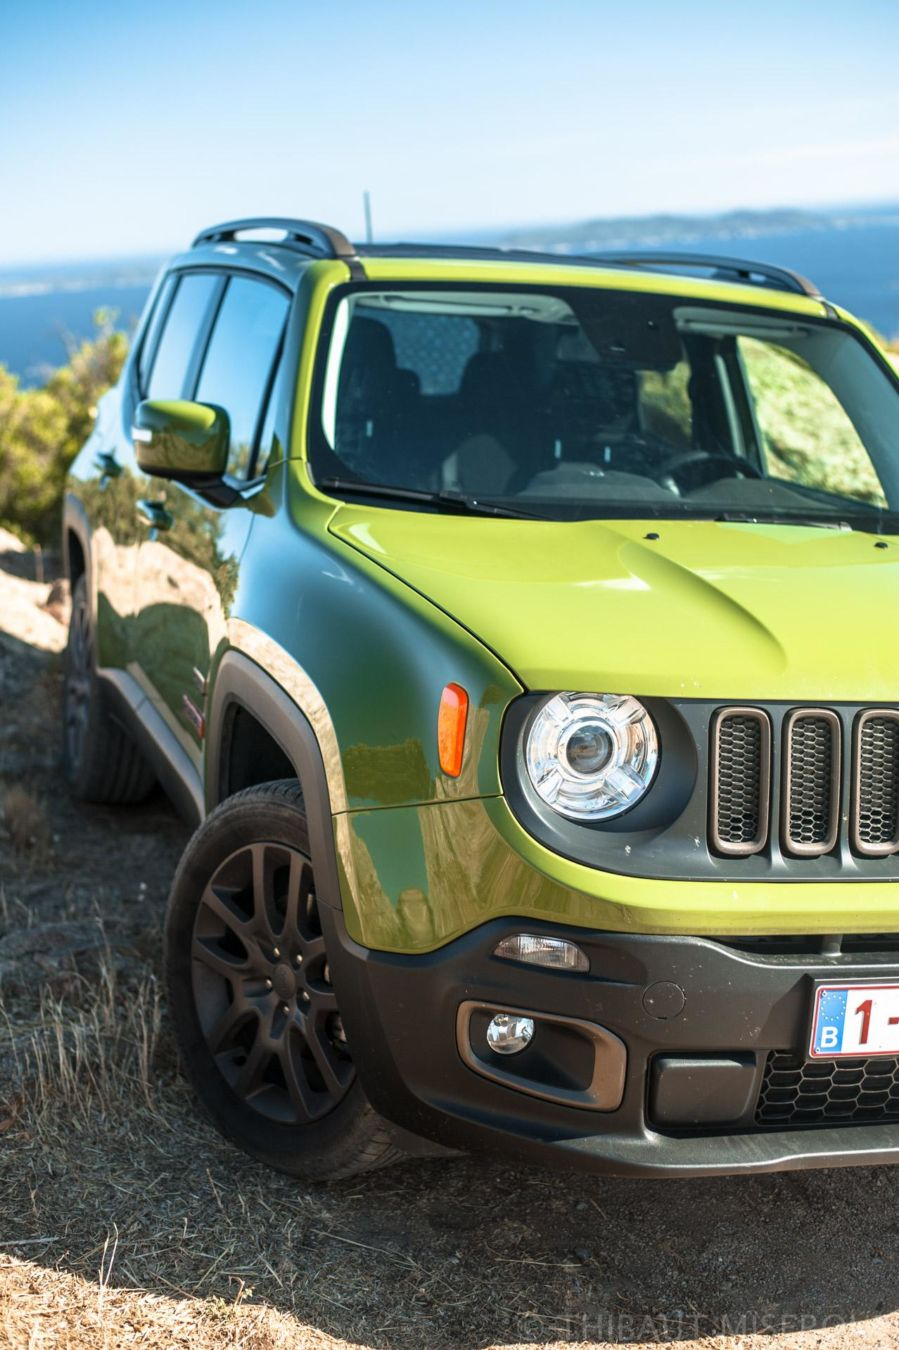 essai jeep renegade 75th anniversary actu. Black Bedroom Furniture Sets. Home Design Ideas